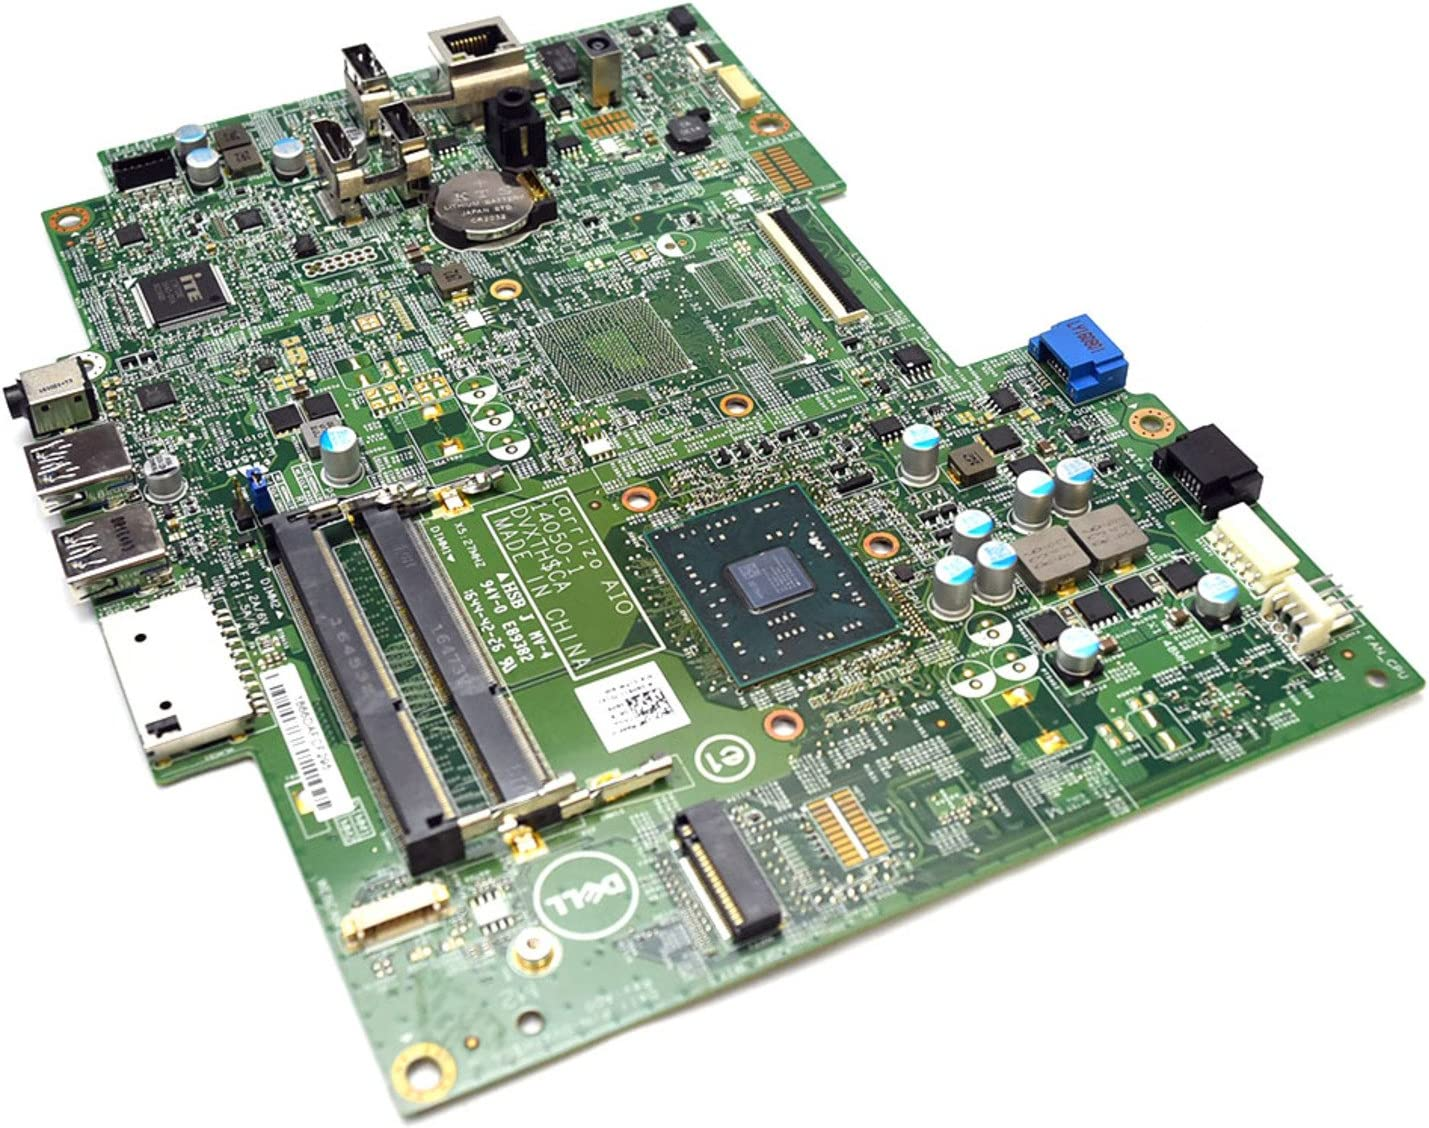 Aquamoon Trading 6H91J Genuine Original Dell Inspiron 24 3000 3455 Non-Touch All In One Integrated AMD A6-7310 Quad-Core APU Carrizo AIO Motherboard DDR3L Intel Main System Board 14050-1 DVXTH